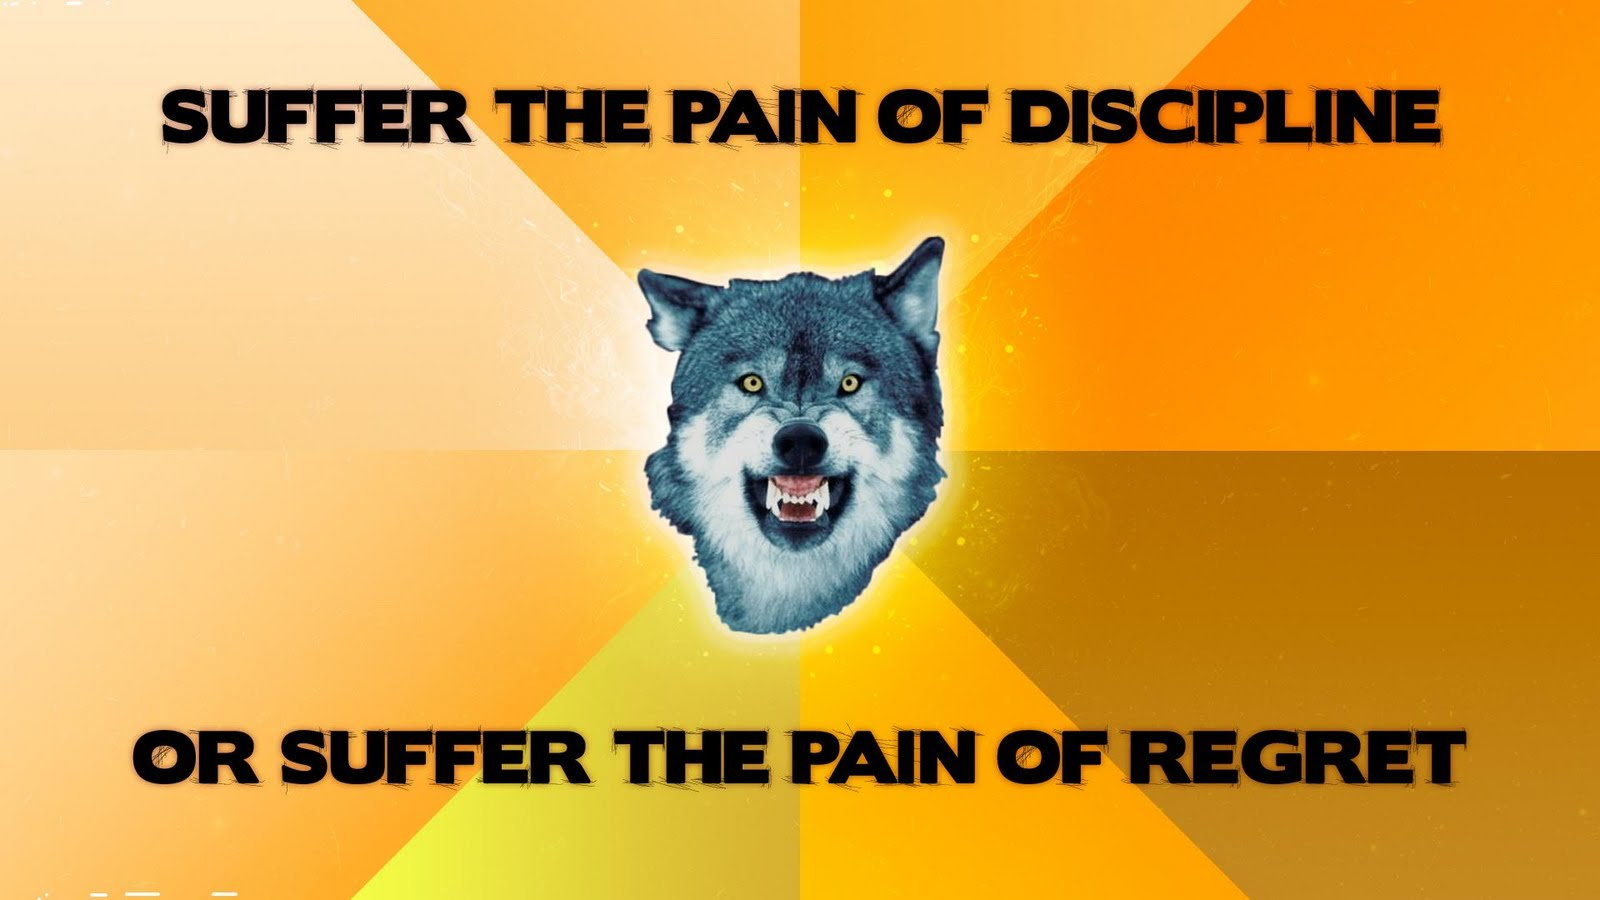 Suffer the pain of discipline, or suffer the pain of regret